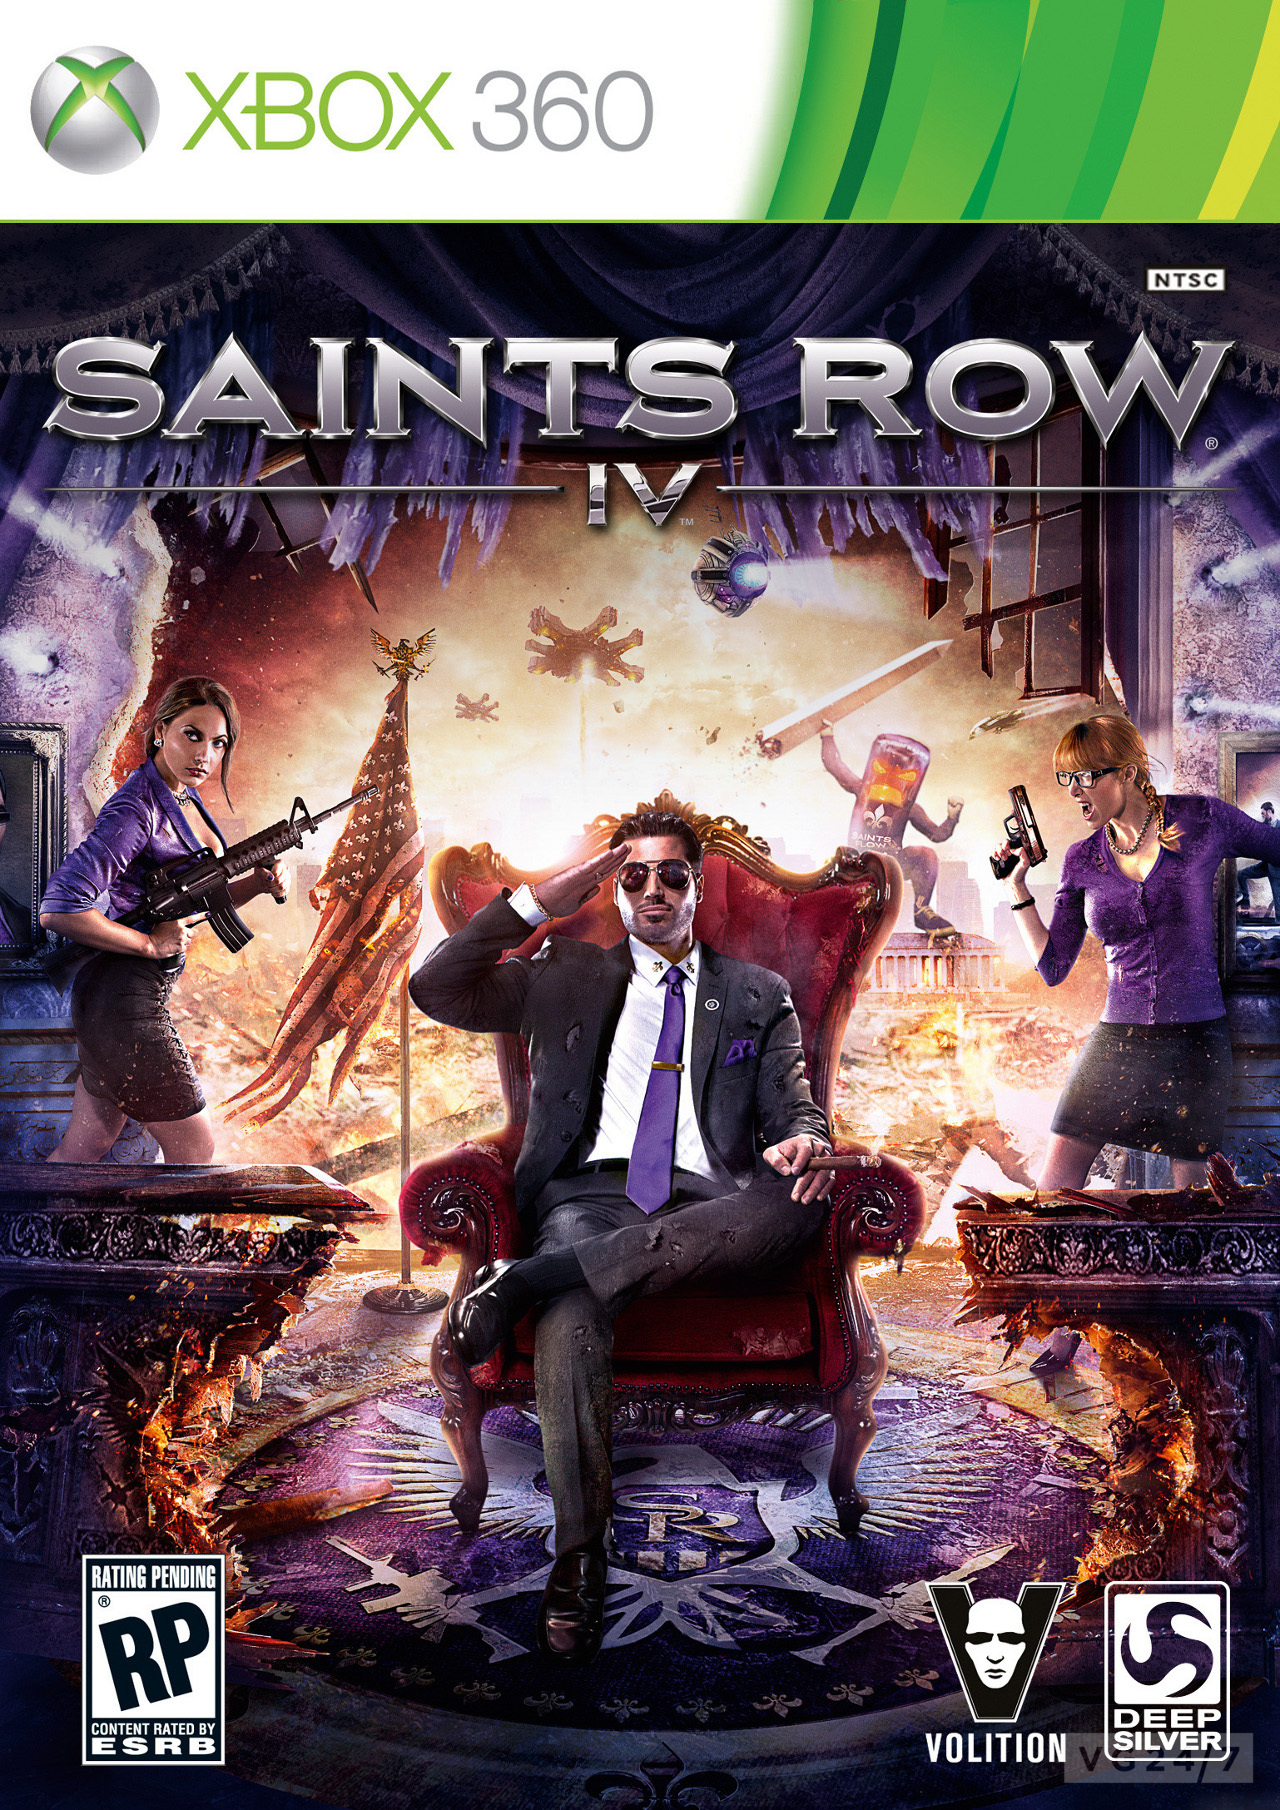 Saints And Angels Oracle Cards: Saint's Row 4 Box-art Is Mad, Very Purple